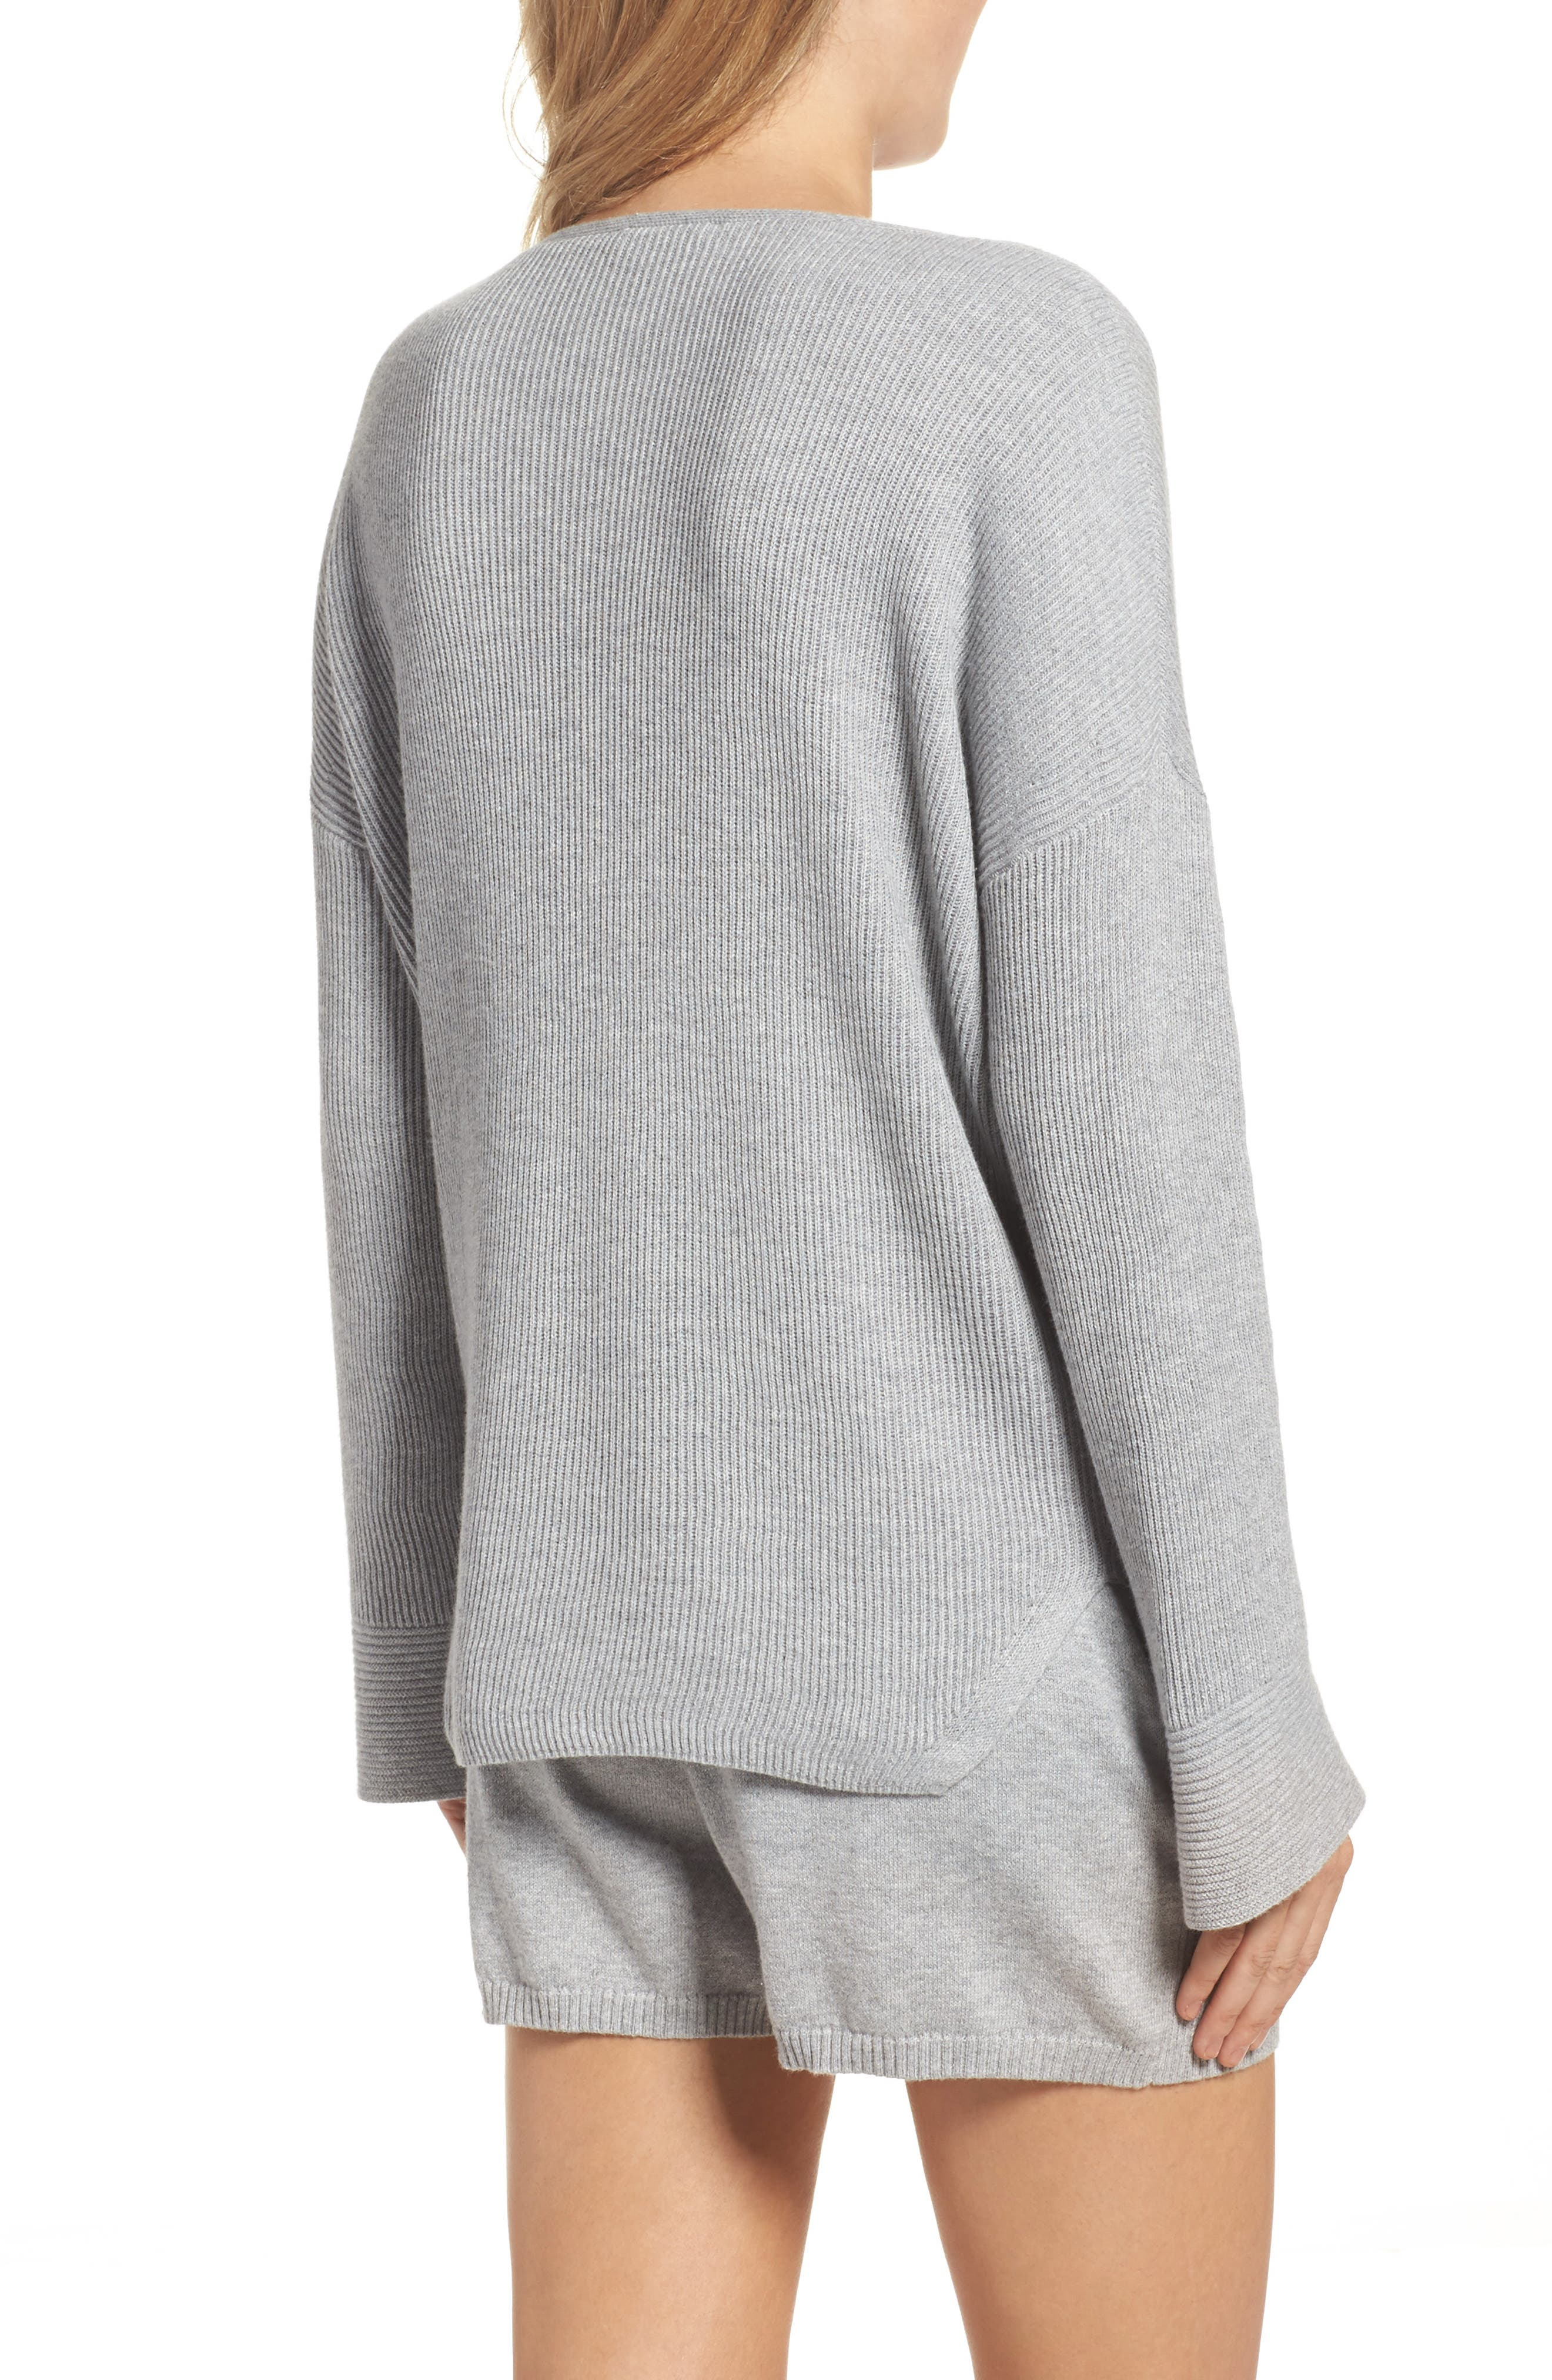 Veronica Lounge Pullover,                             Alternate thumbnail 3, color,